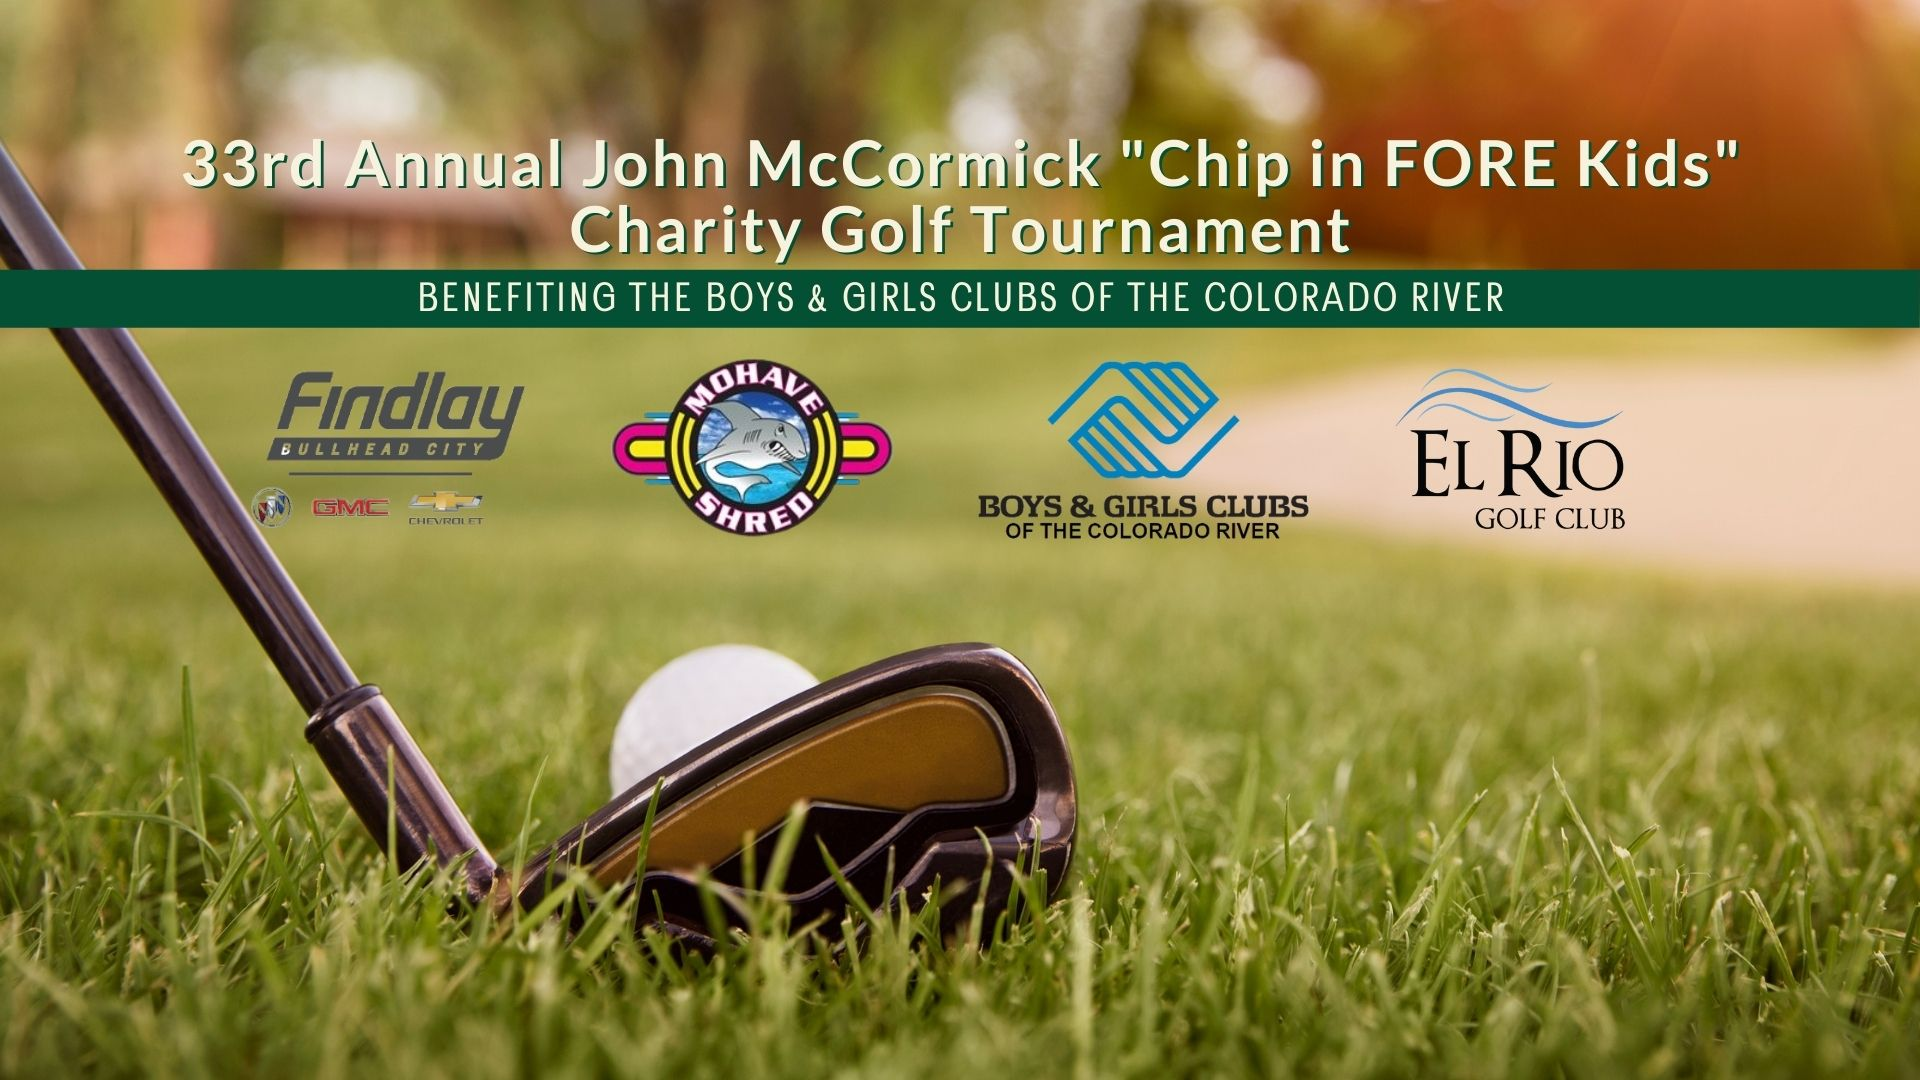 """33rd Annual John McCormick """"Chip In FORE Kids"""" Charity Golf Tournament"""